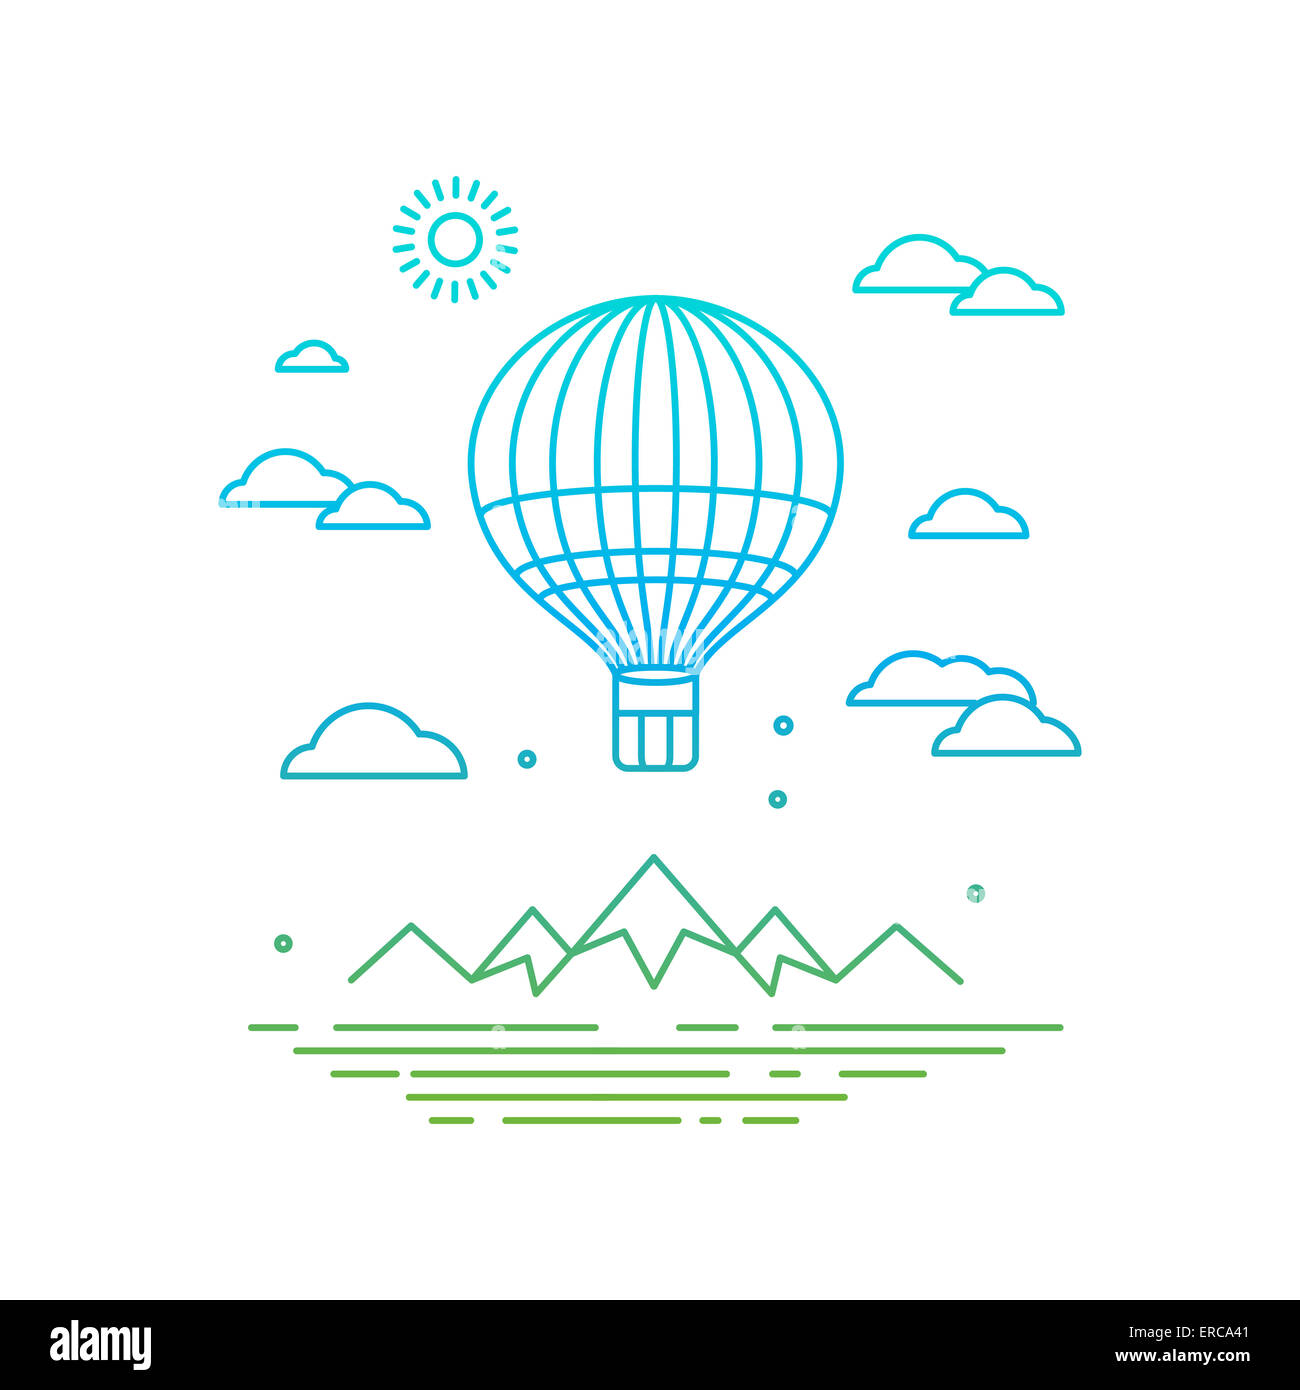 Travel concept in linear style - air balloon flying over the mountains - Stock Image